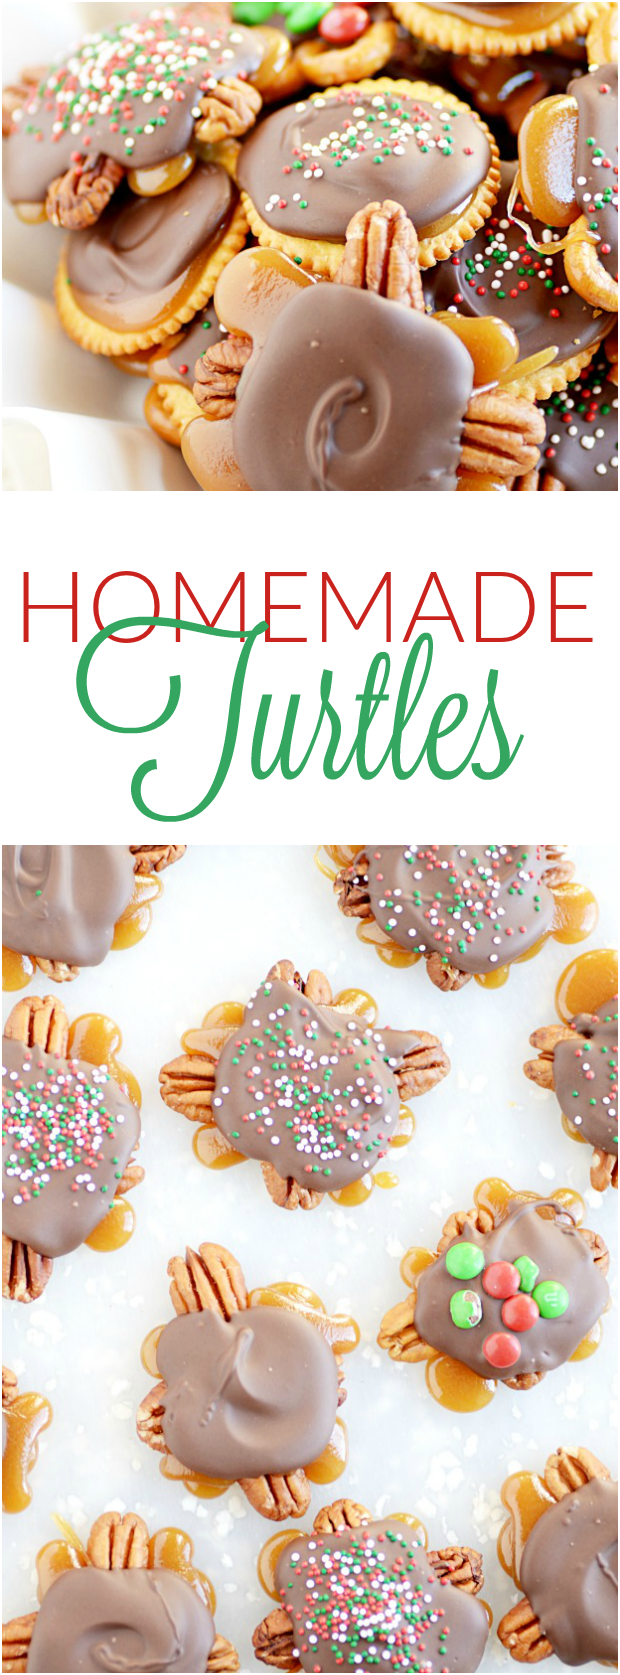 Homemade Turtles. Don't be scared. If I can do it, you can do it!